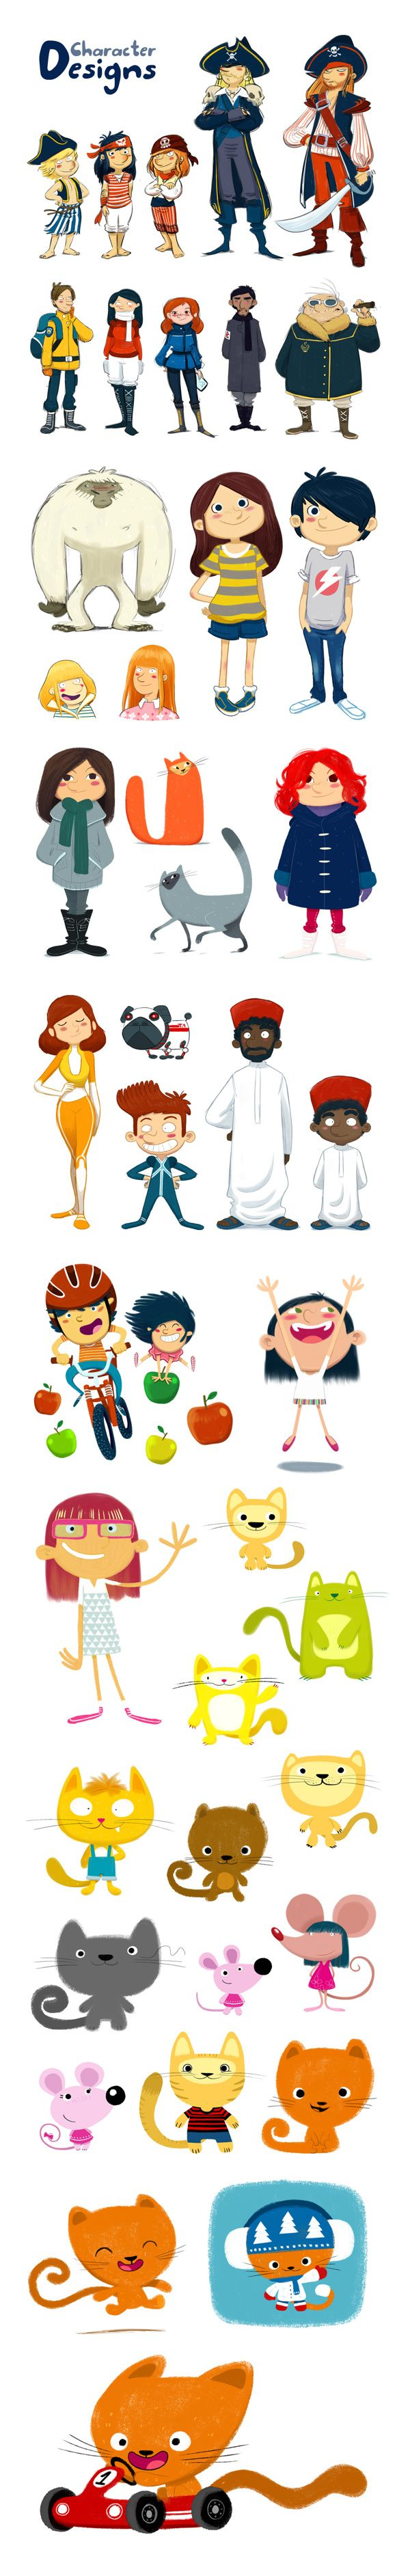 Cartoon Characters Ideas : Best images about fyp character ideas on pinterest